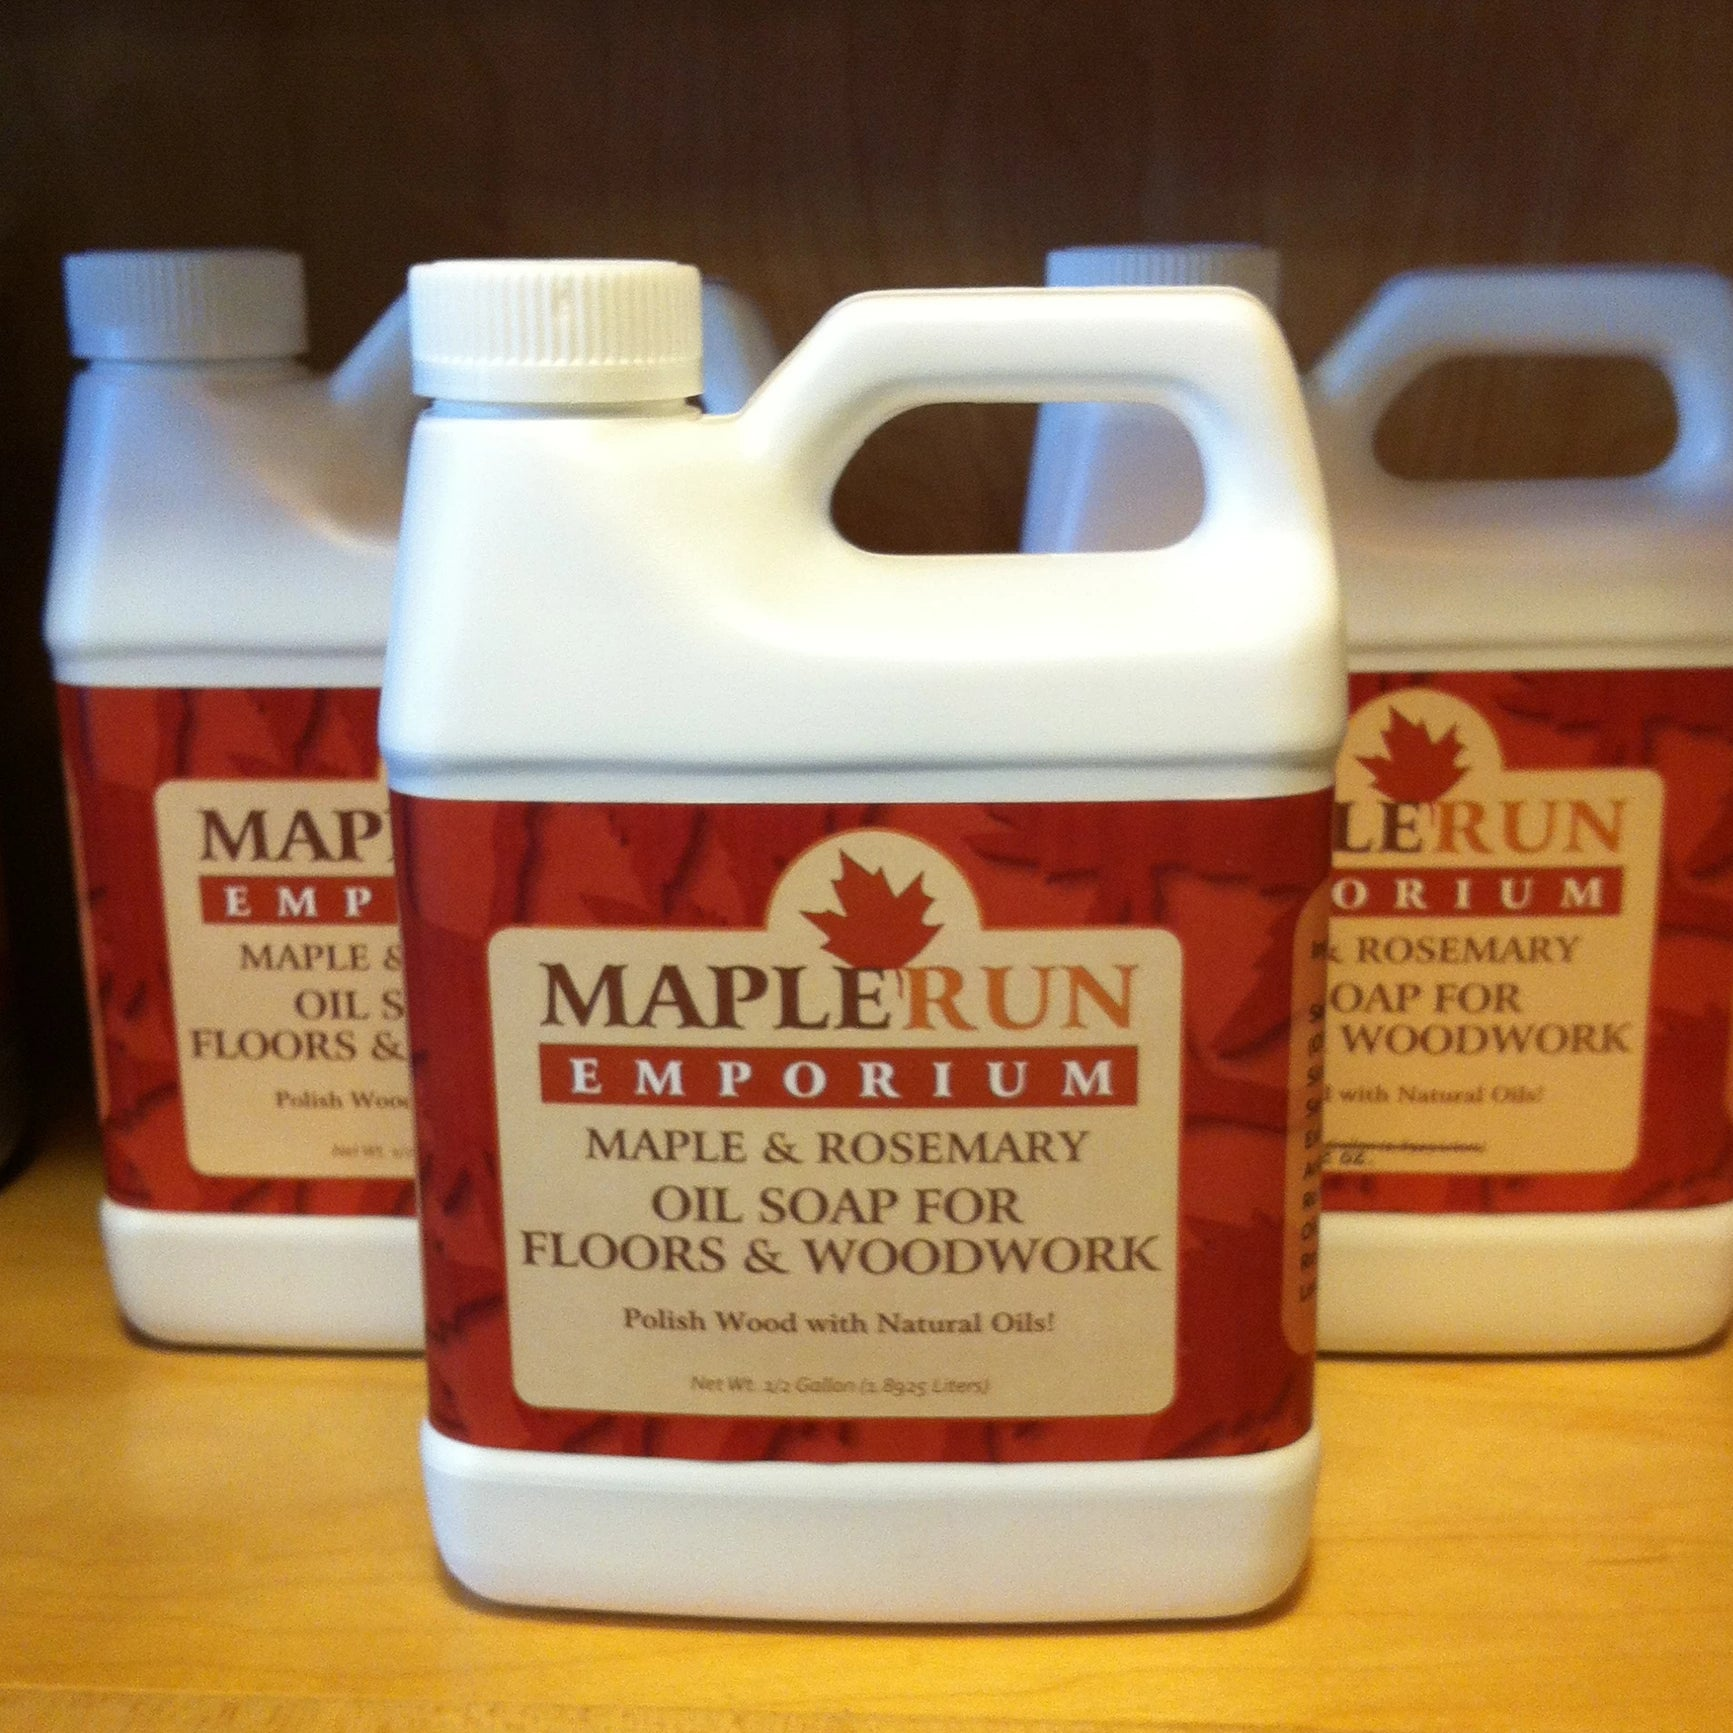 Maple & Rosemary Oil Soap for Floors & Woodwork 32 oz